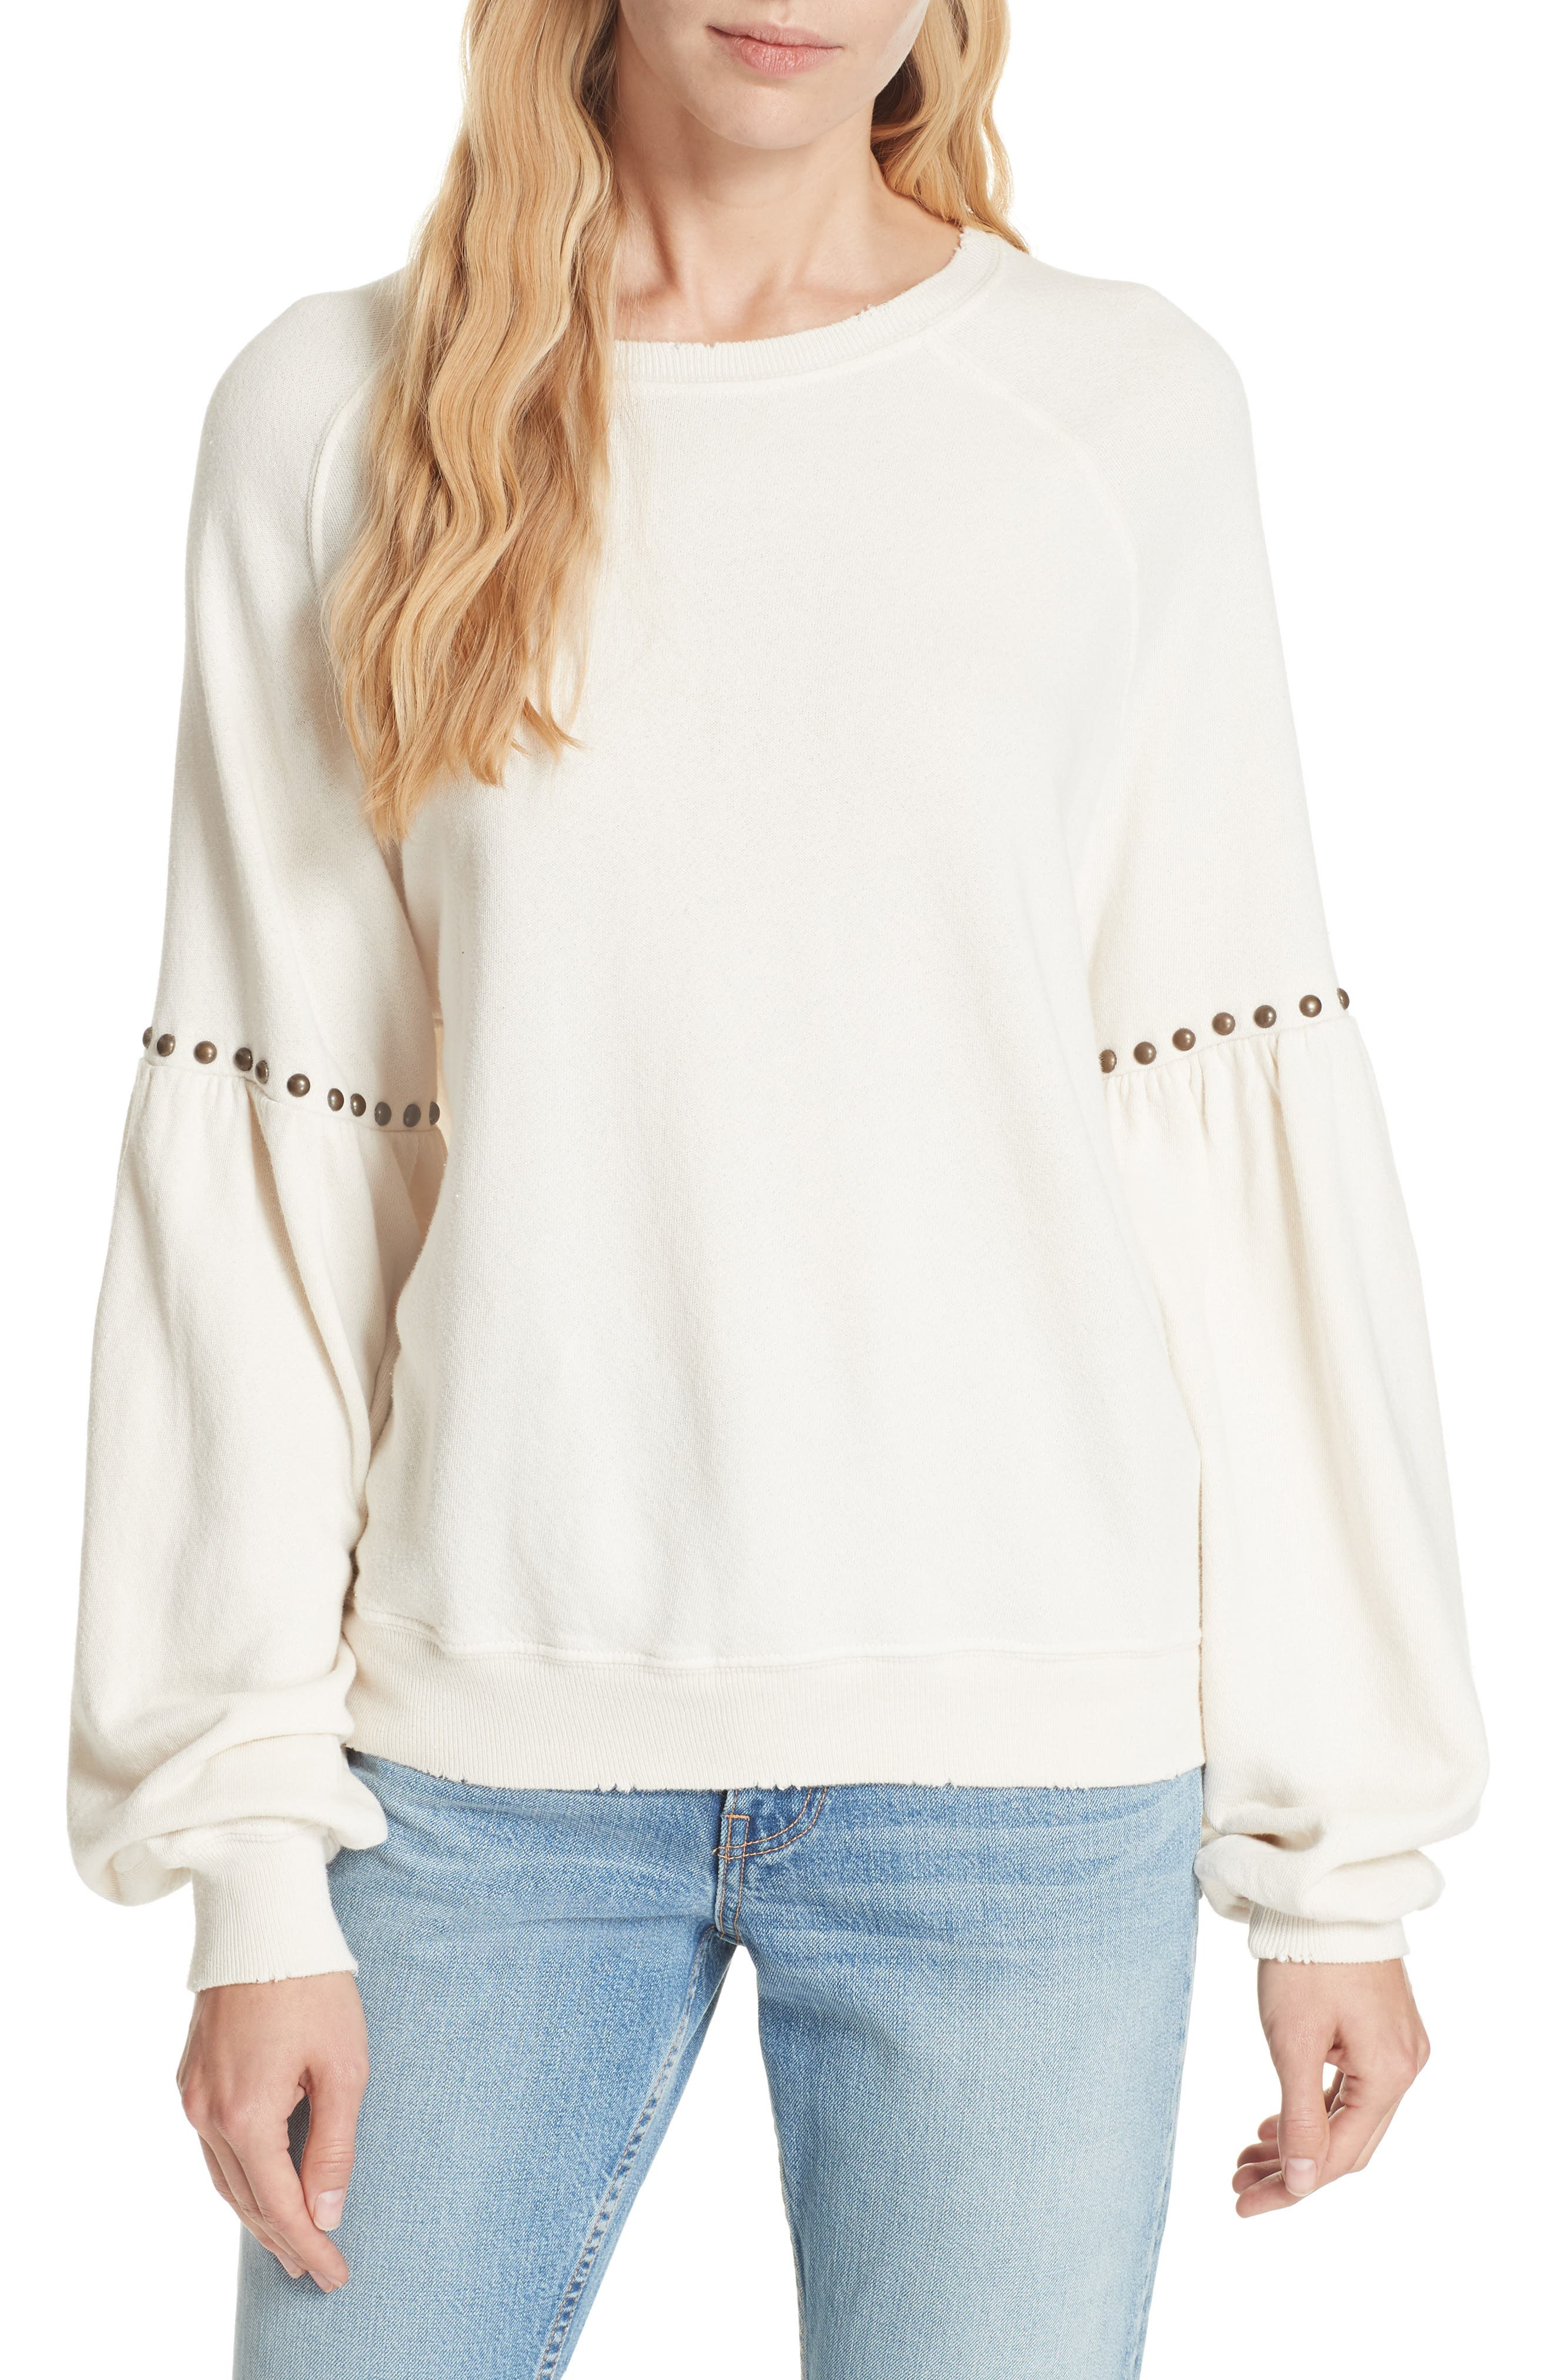 The Bishop Sleeve Studded Sweatshirt,                             Main thumbnail 1, color,                             WASHED WHITE W/ STUDS